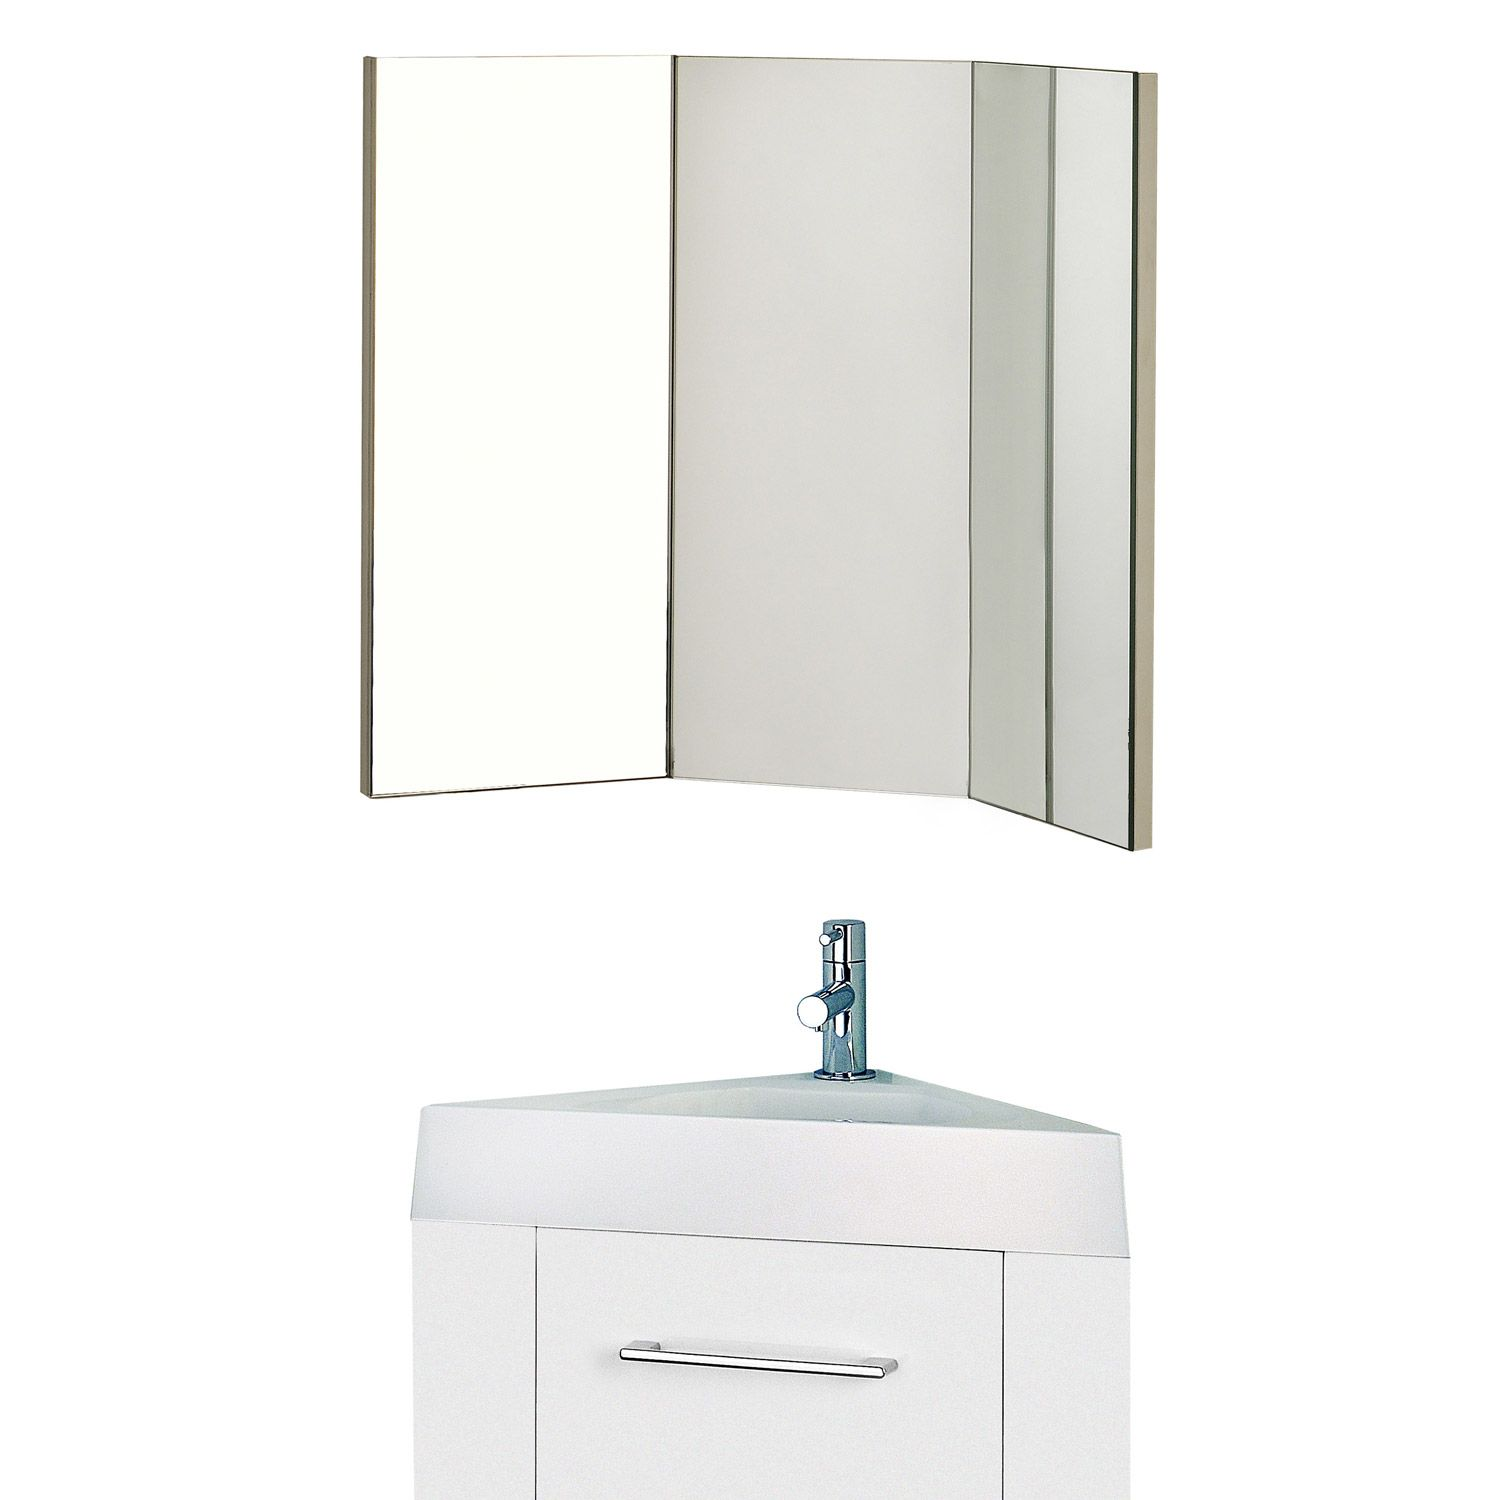 Meuble Lave Mains Avec Miroir Sensea Remix Blanc Blanc N - Magic Corner Leroy Merlin